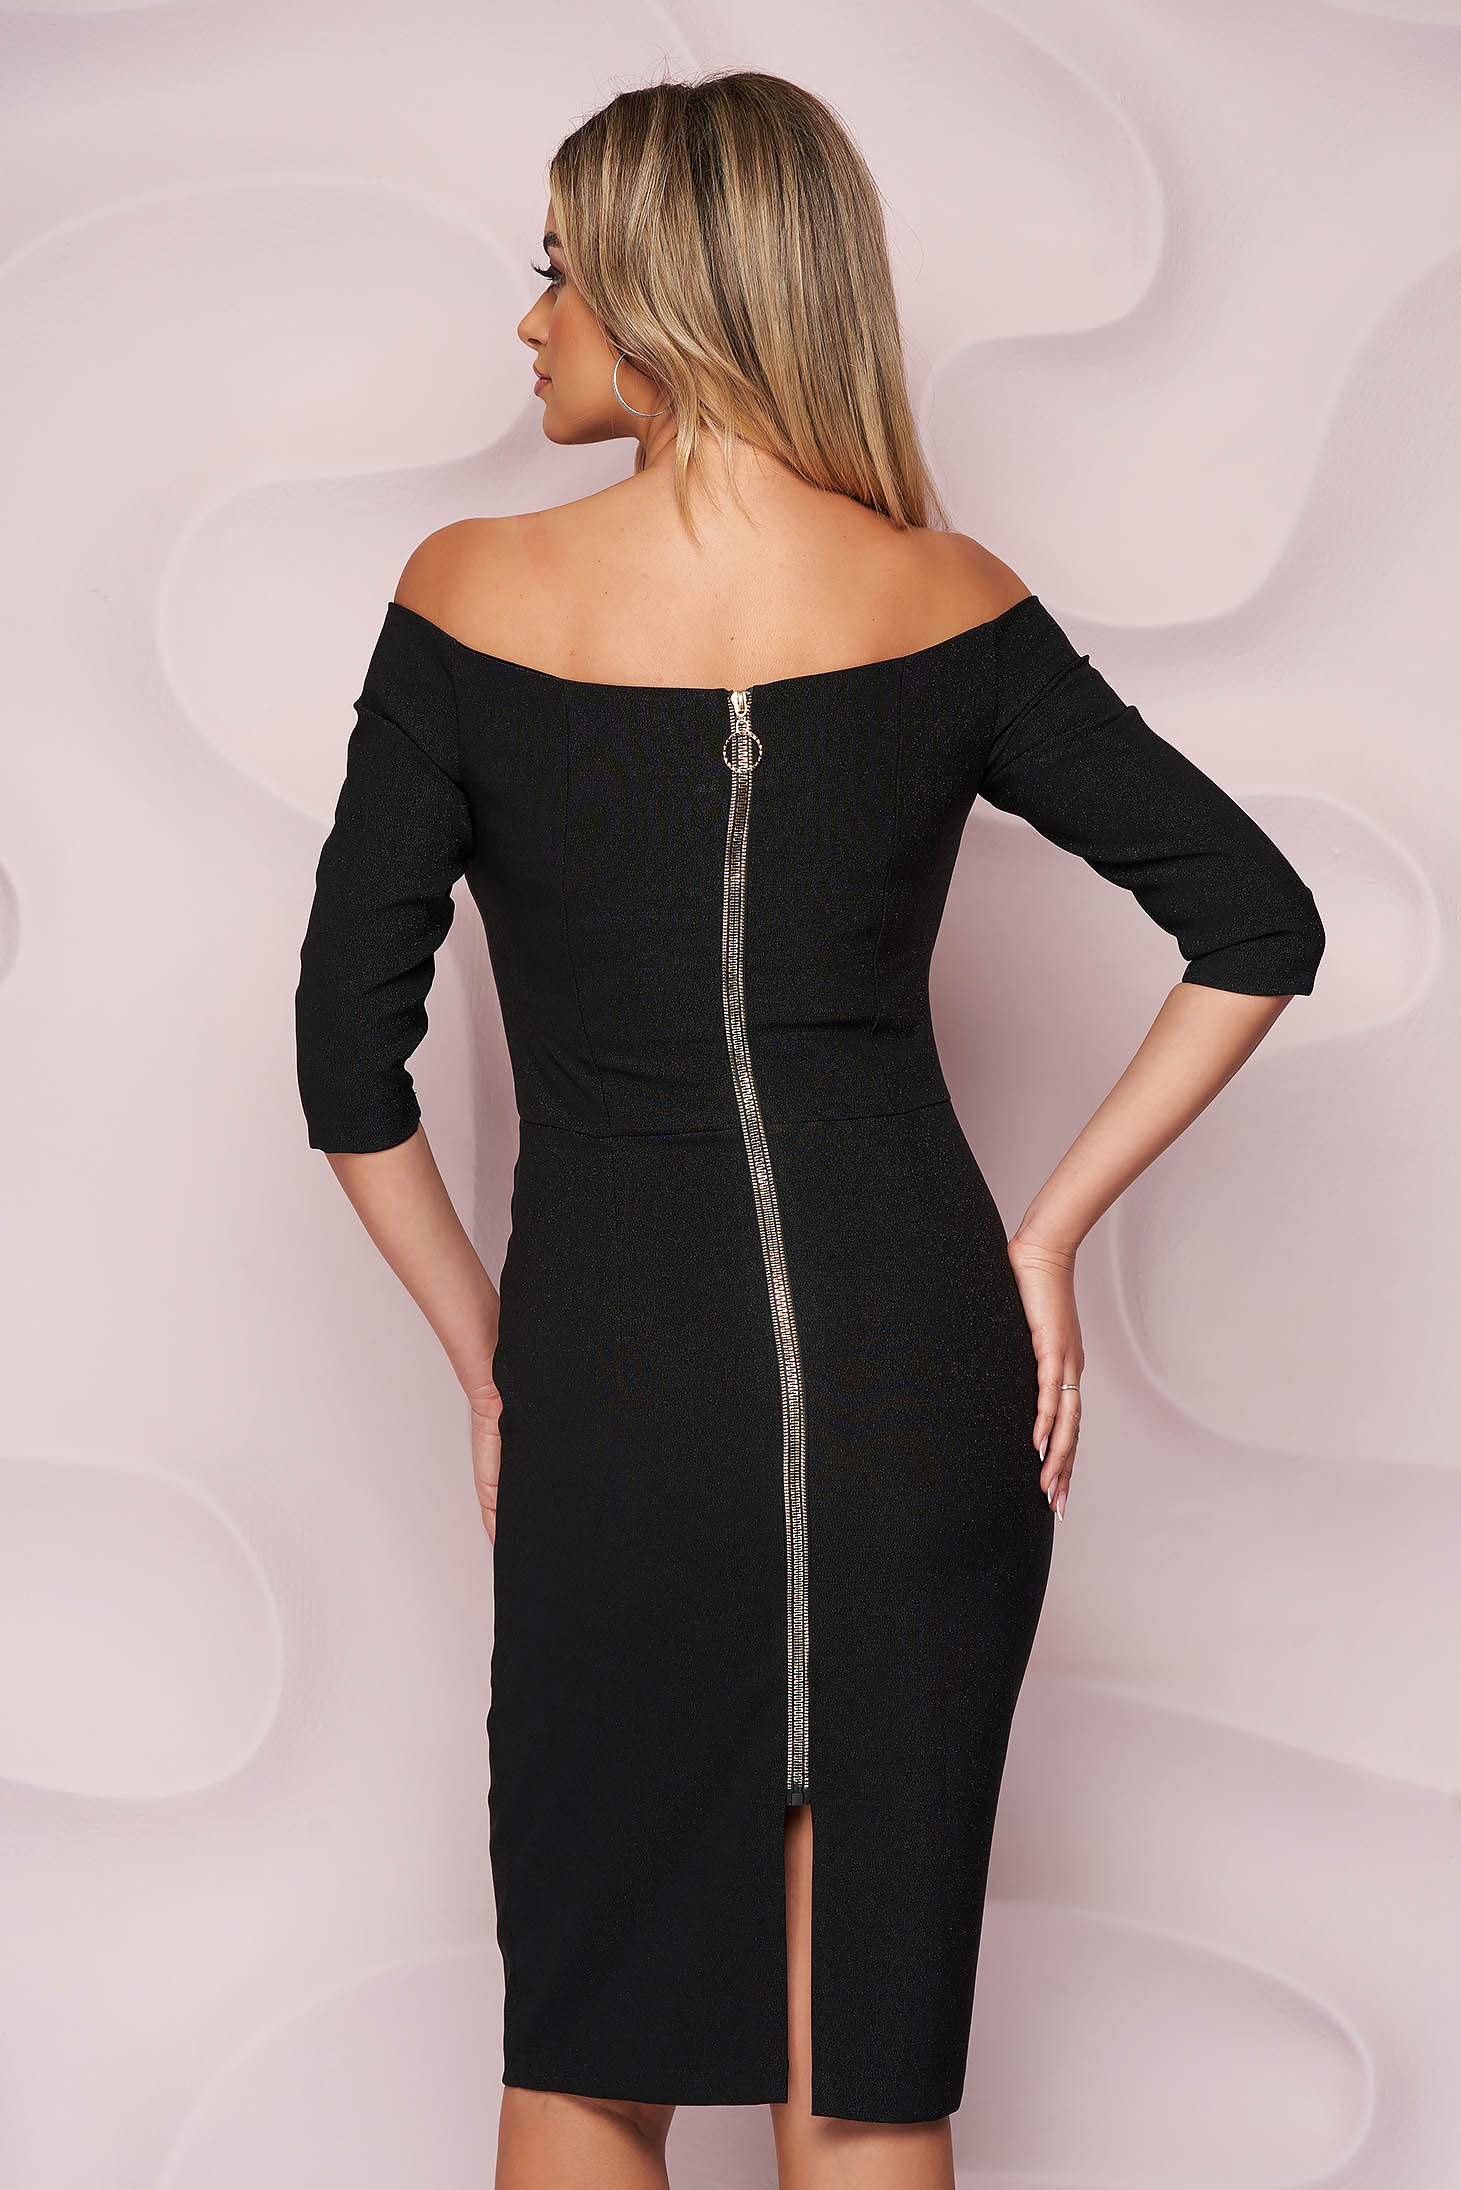 StarShinerS black dress midi pencil occasional with deep cleavage back zipper fastening slightly elastic fabric